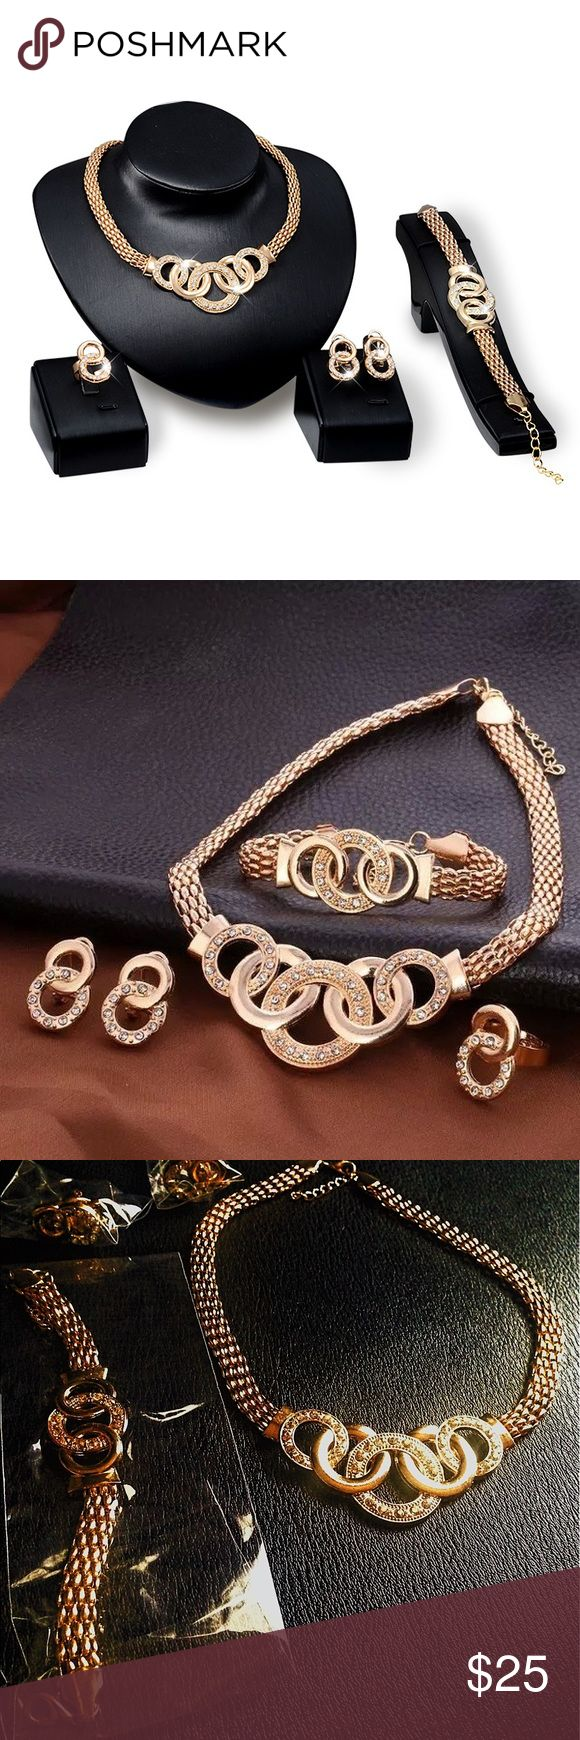 European Style Handcuff Jewelry Set ⚡️European Style Handcuff Jewelry Set.             ⚡️Necklace, Bracelet, Earrings, Ring             ⚡️Brand New Jewelry